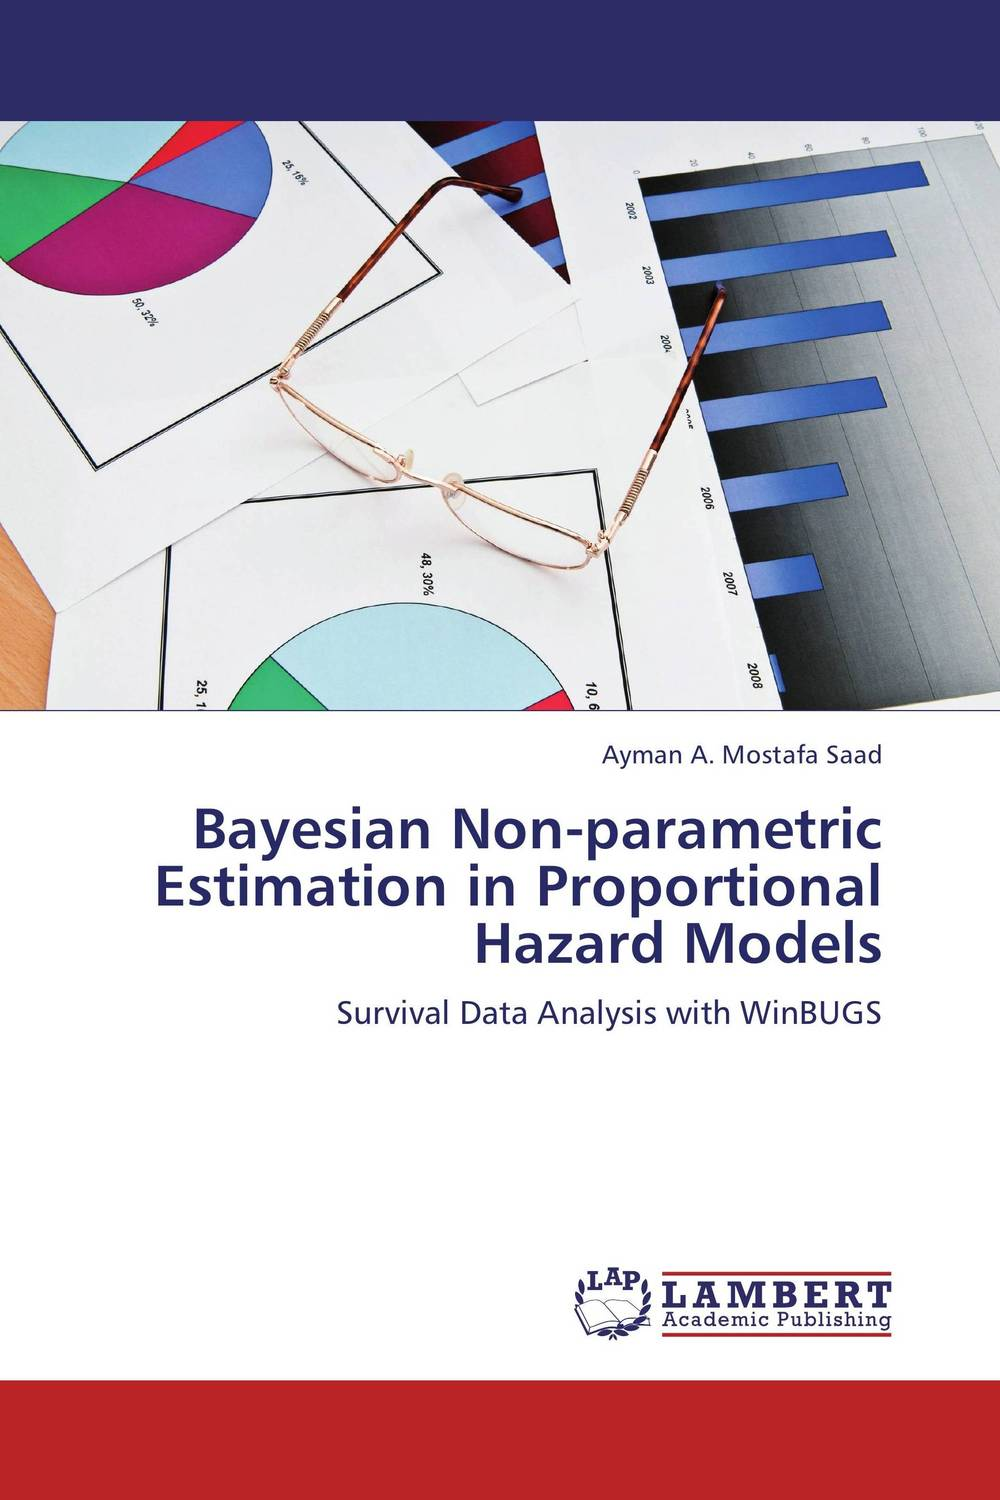 Bayesian Non-parametric Estimation in Proportional Hazard Models bayesian deconvolution of sparse processes